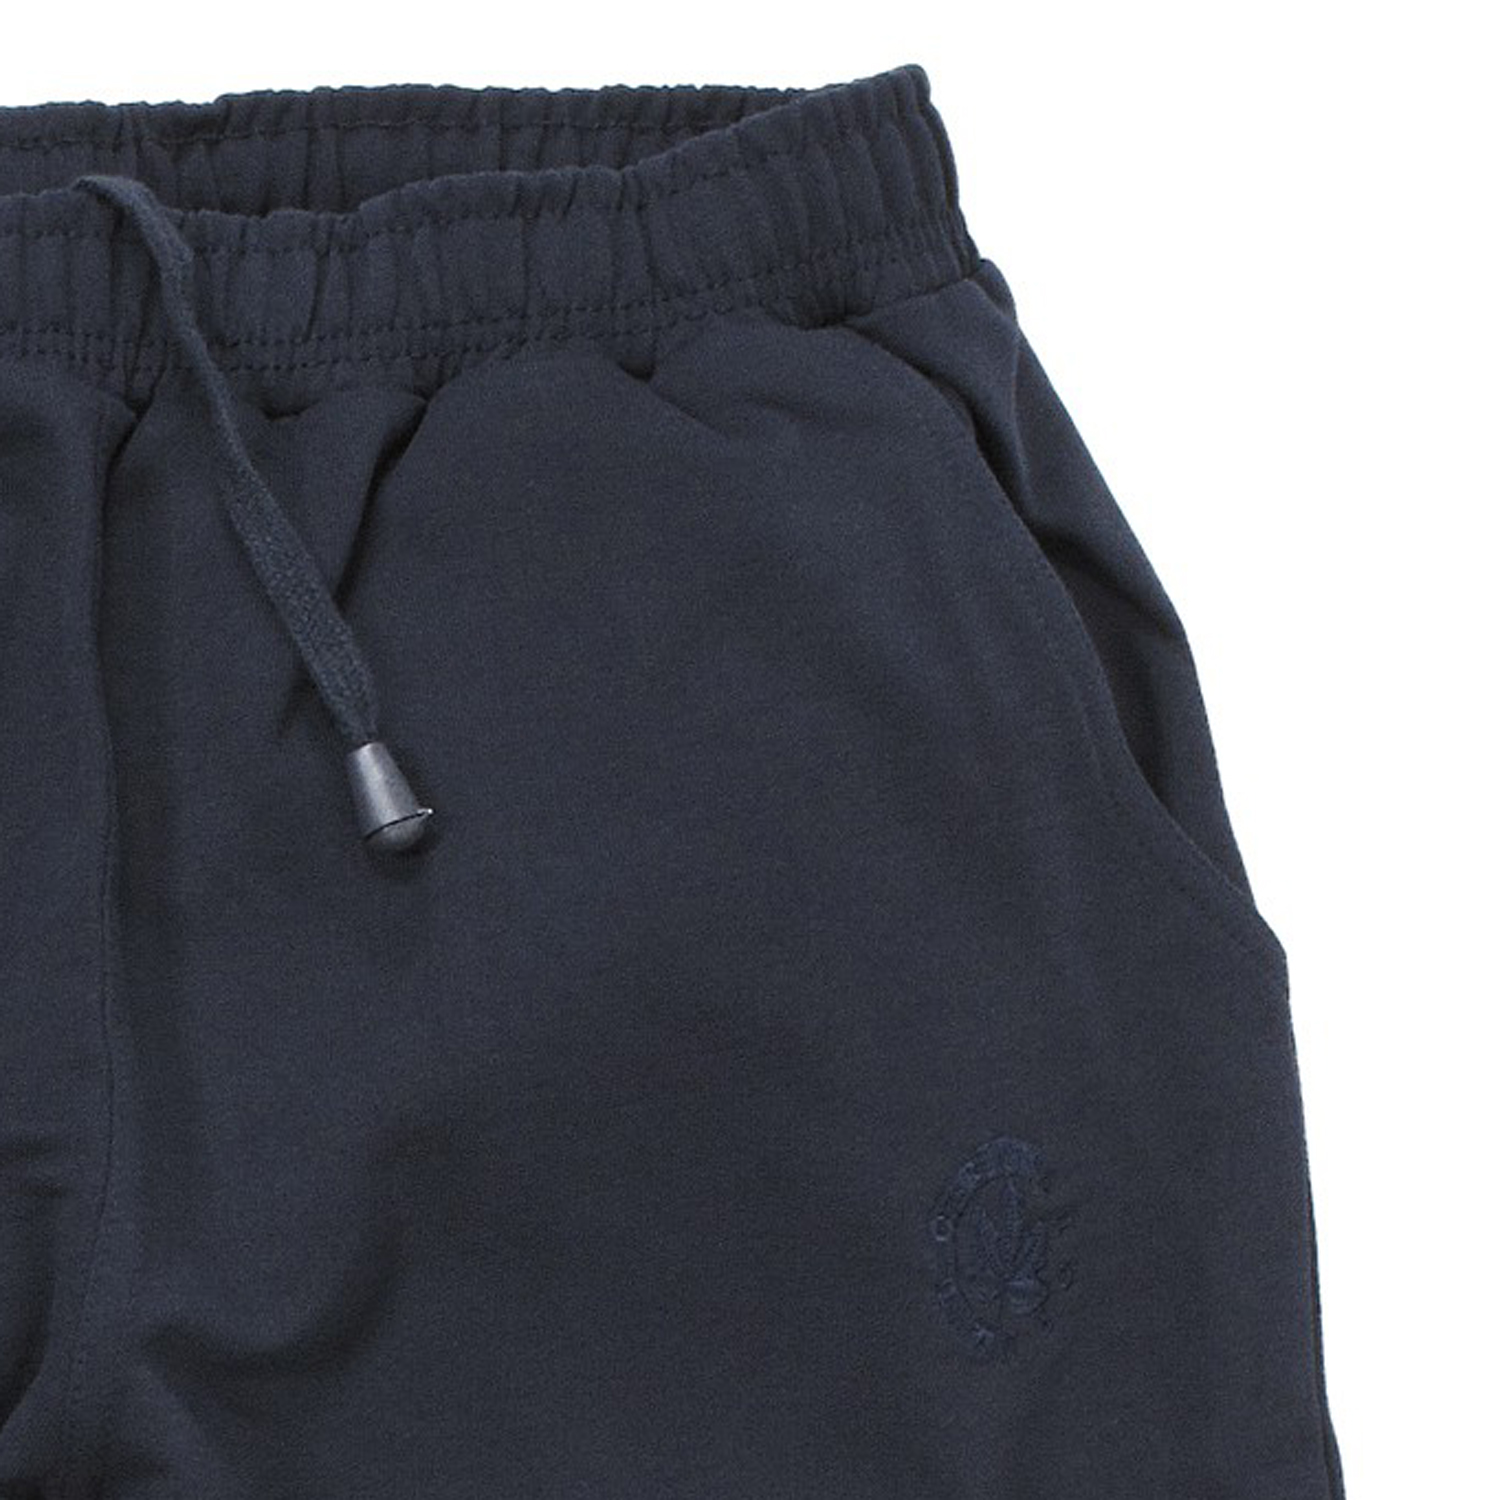 Detail Image to Basic sweat bermuda in dark blue by Ahorn Sportswear in oversizes up to 10XL